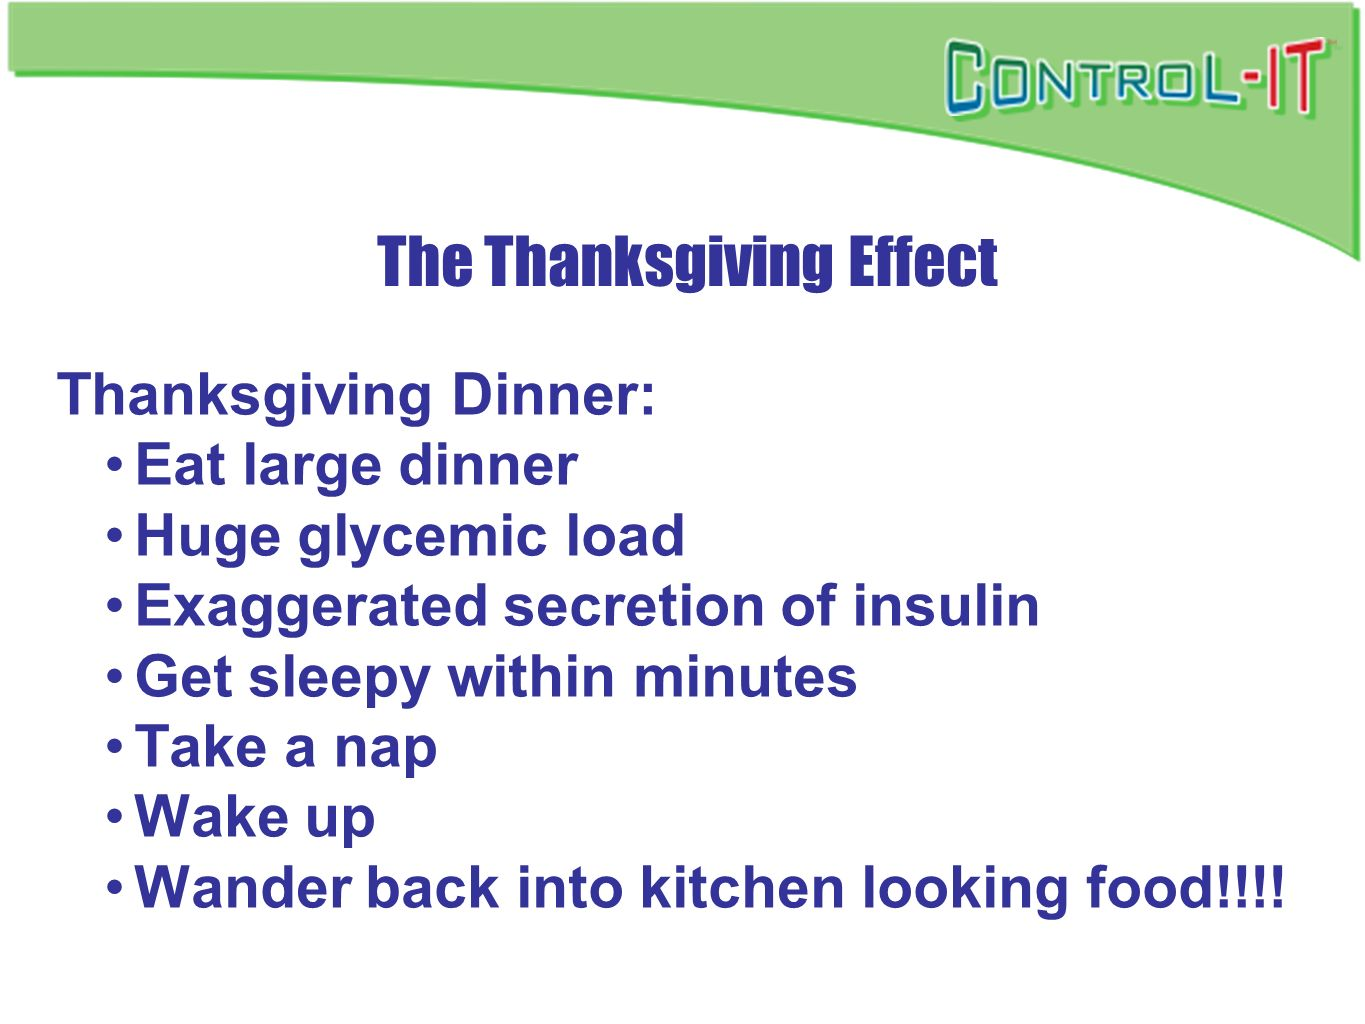 The Thanksgiving Effect Thanksgiving Dinner: Eat large dinner Huge glycemic load Exaggerated secretion of insulin Get sleepy within minutes Take a nap